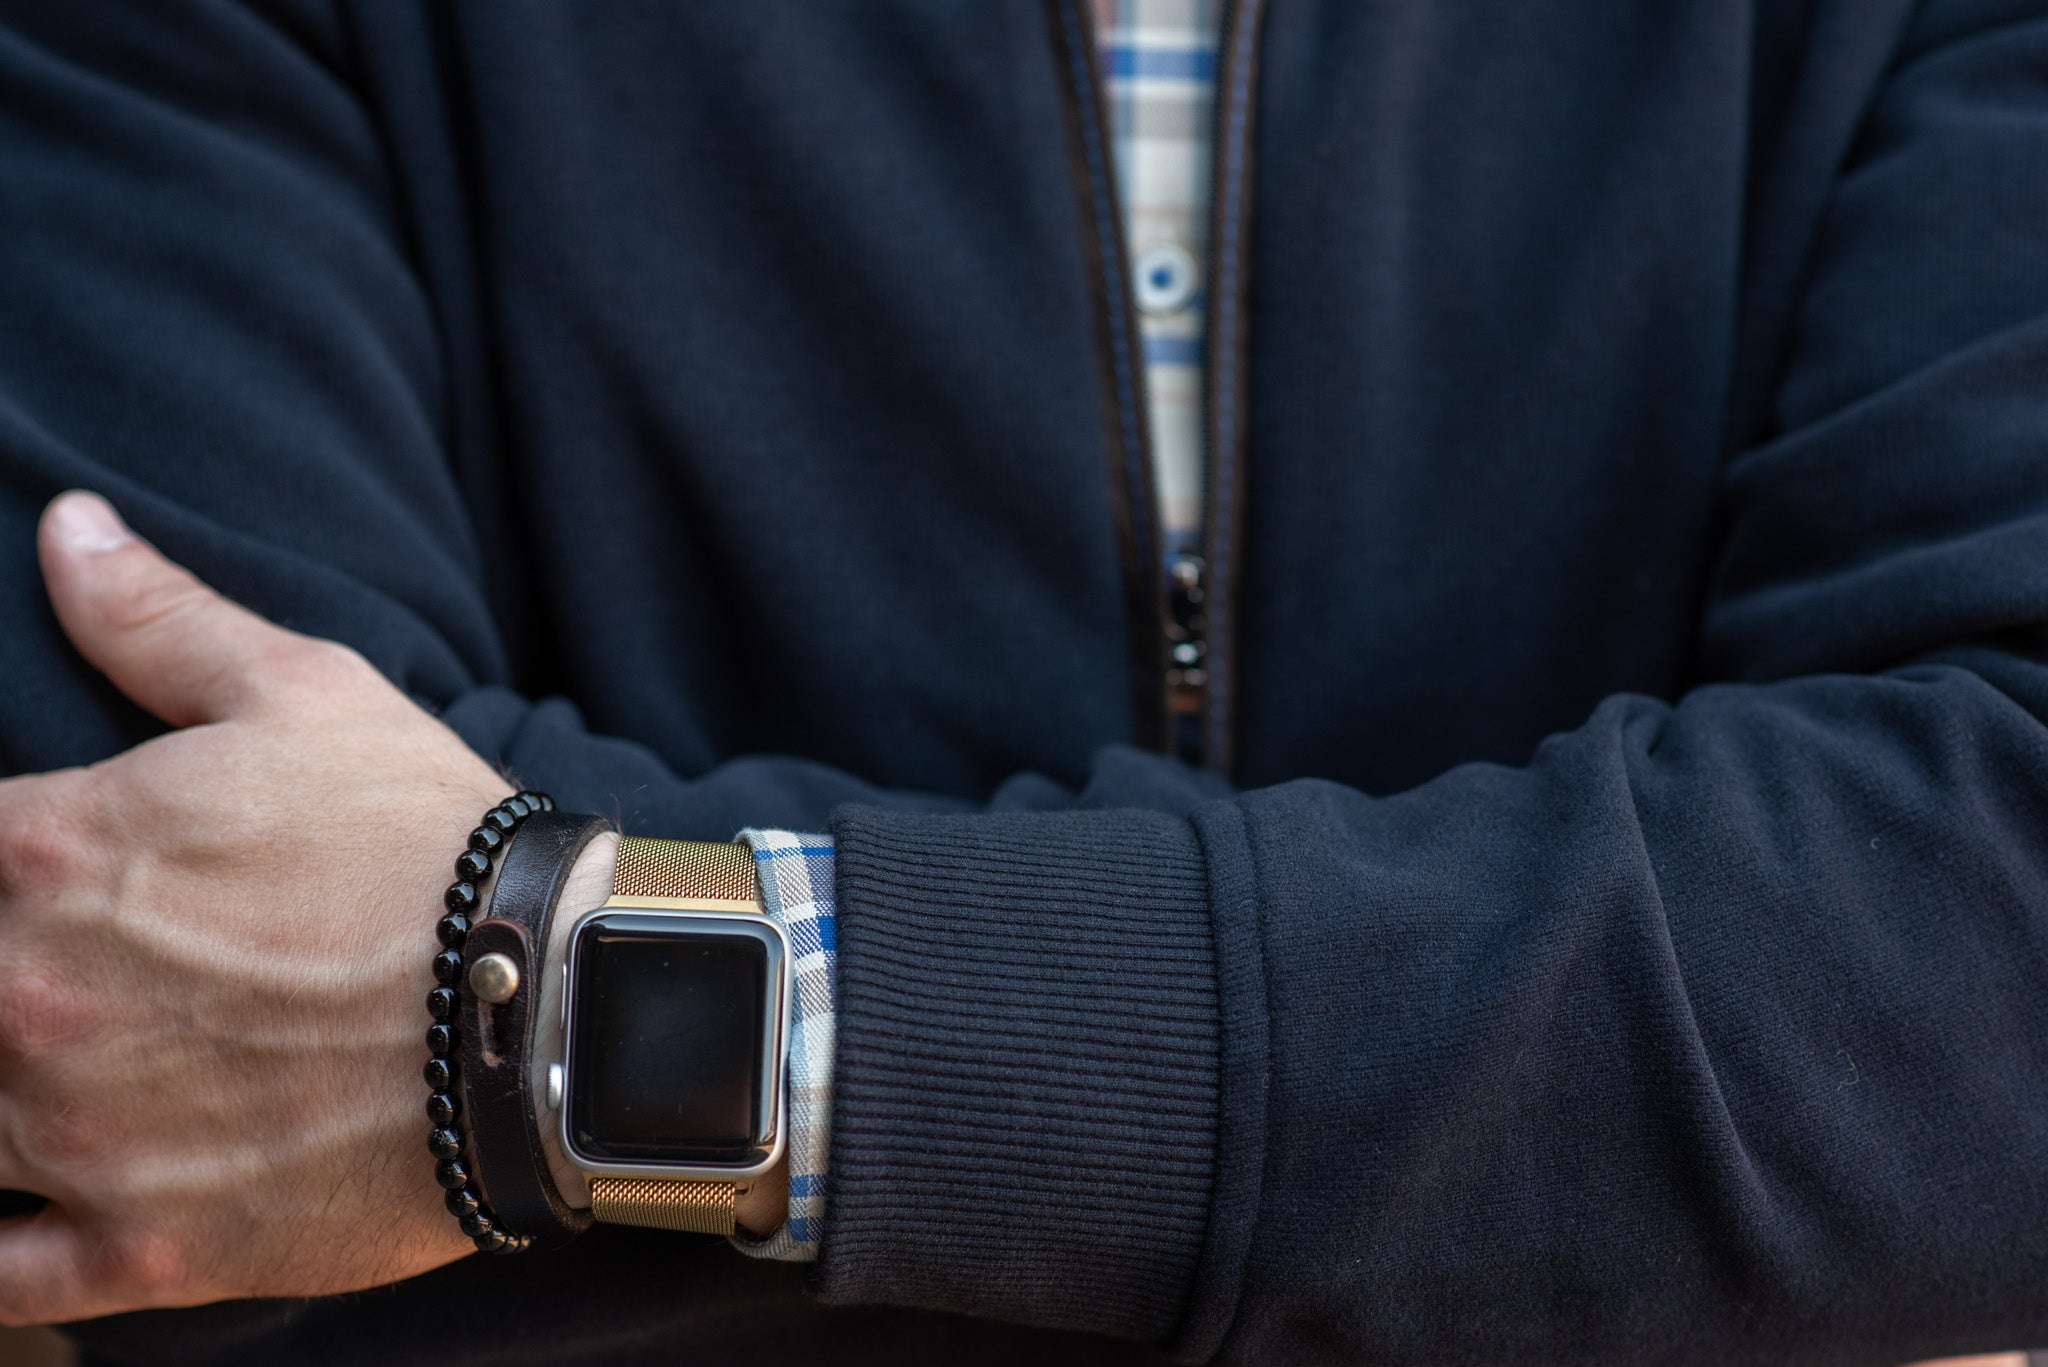 apple watch with bracelets and sweater